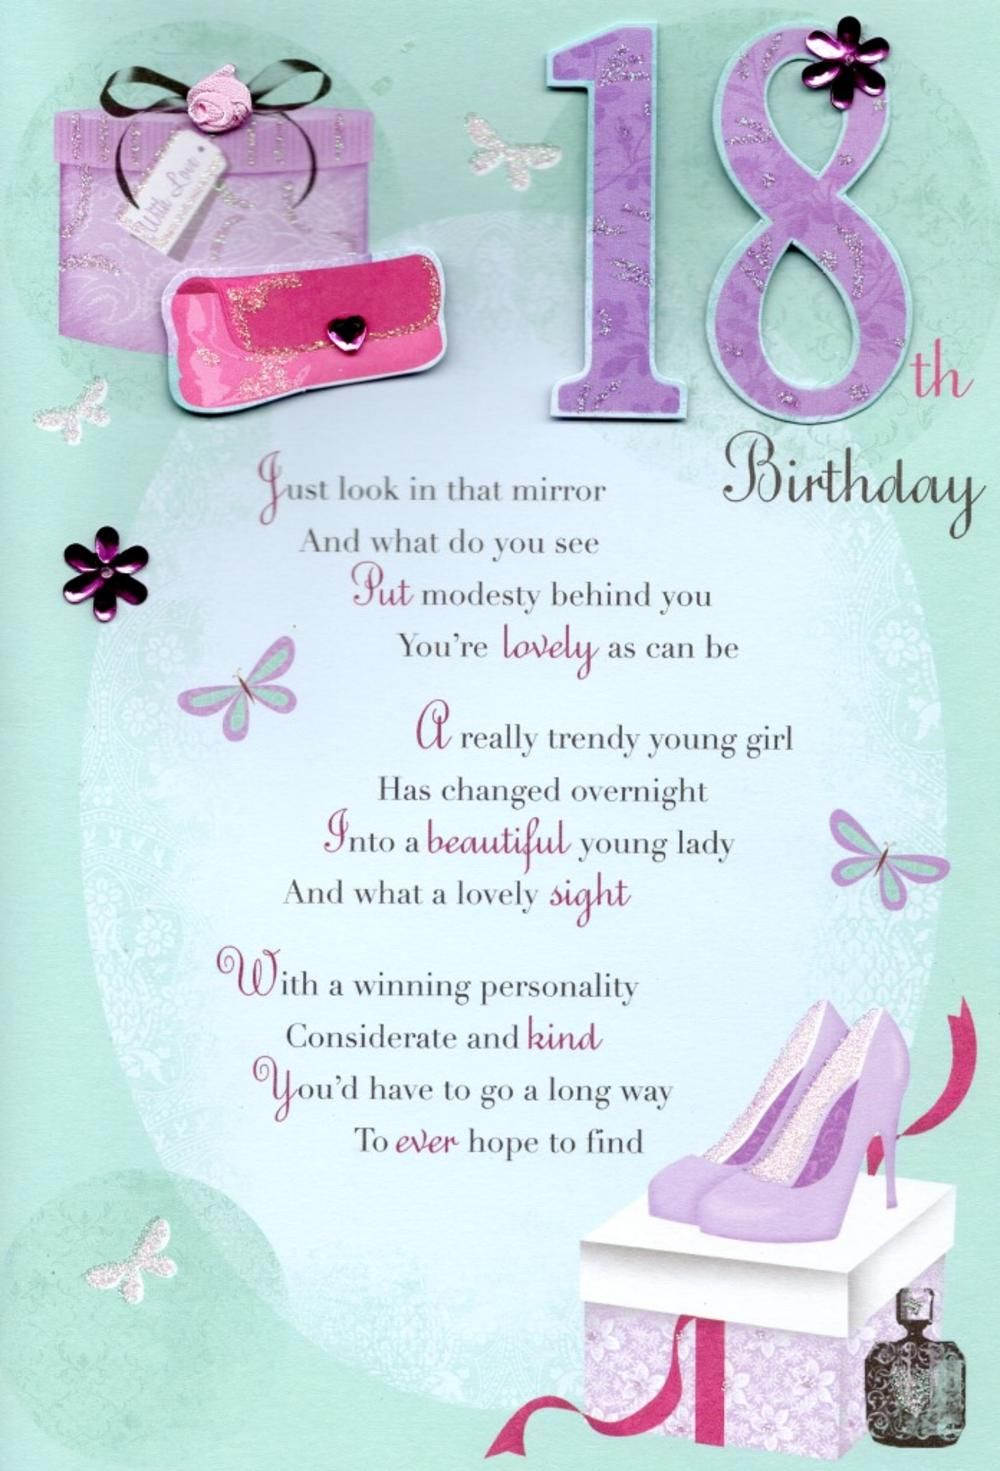 18th happy birthday greeting card happy birthday greeting card 18th happy birthday greeting card kristyandbryce Choice Image